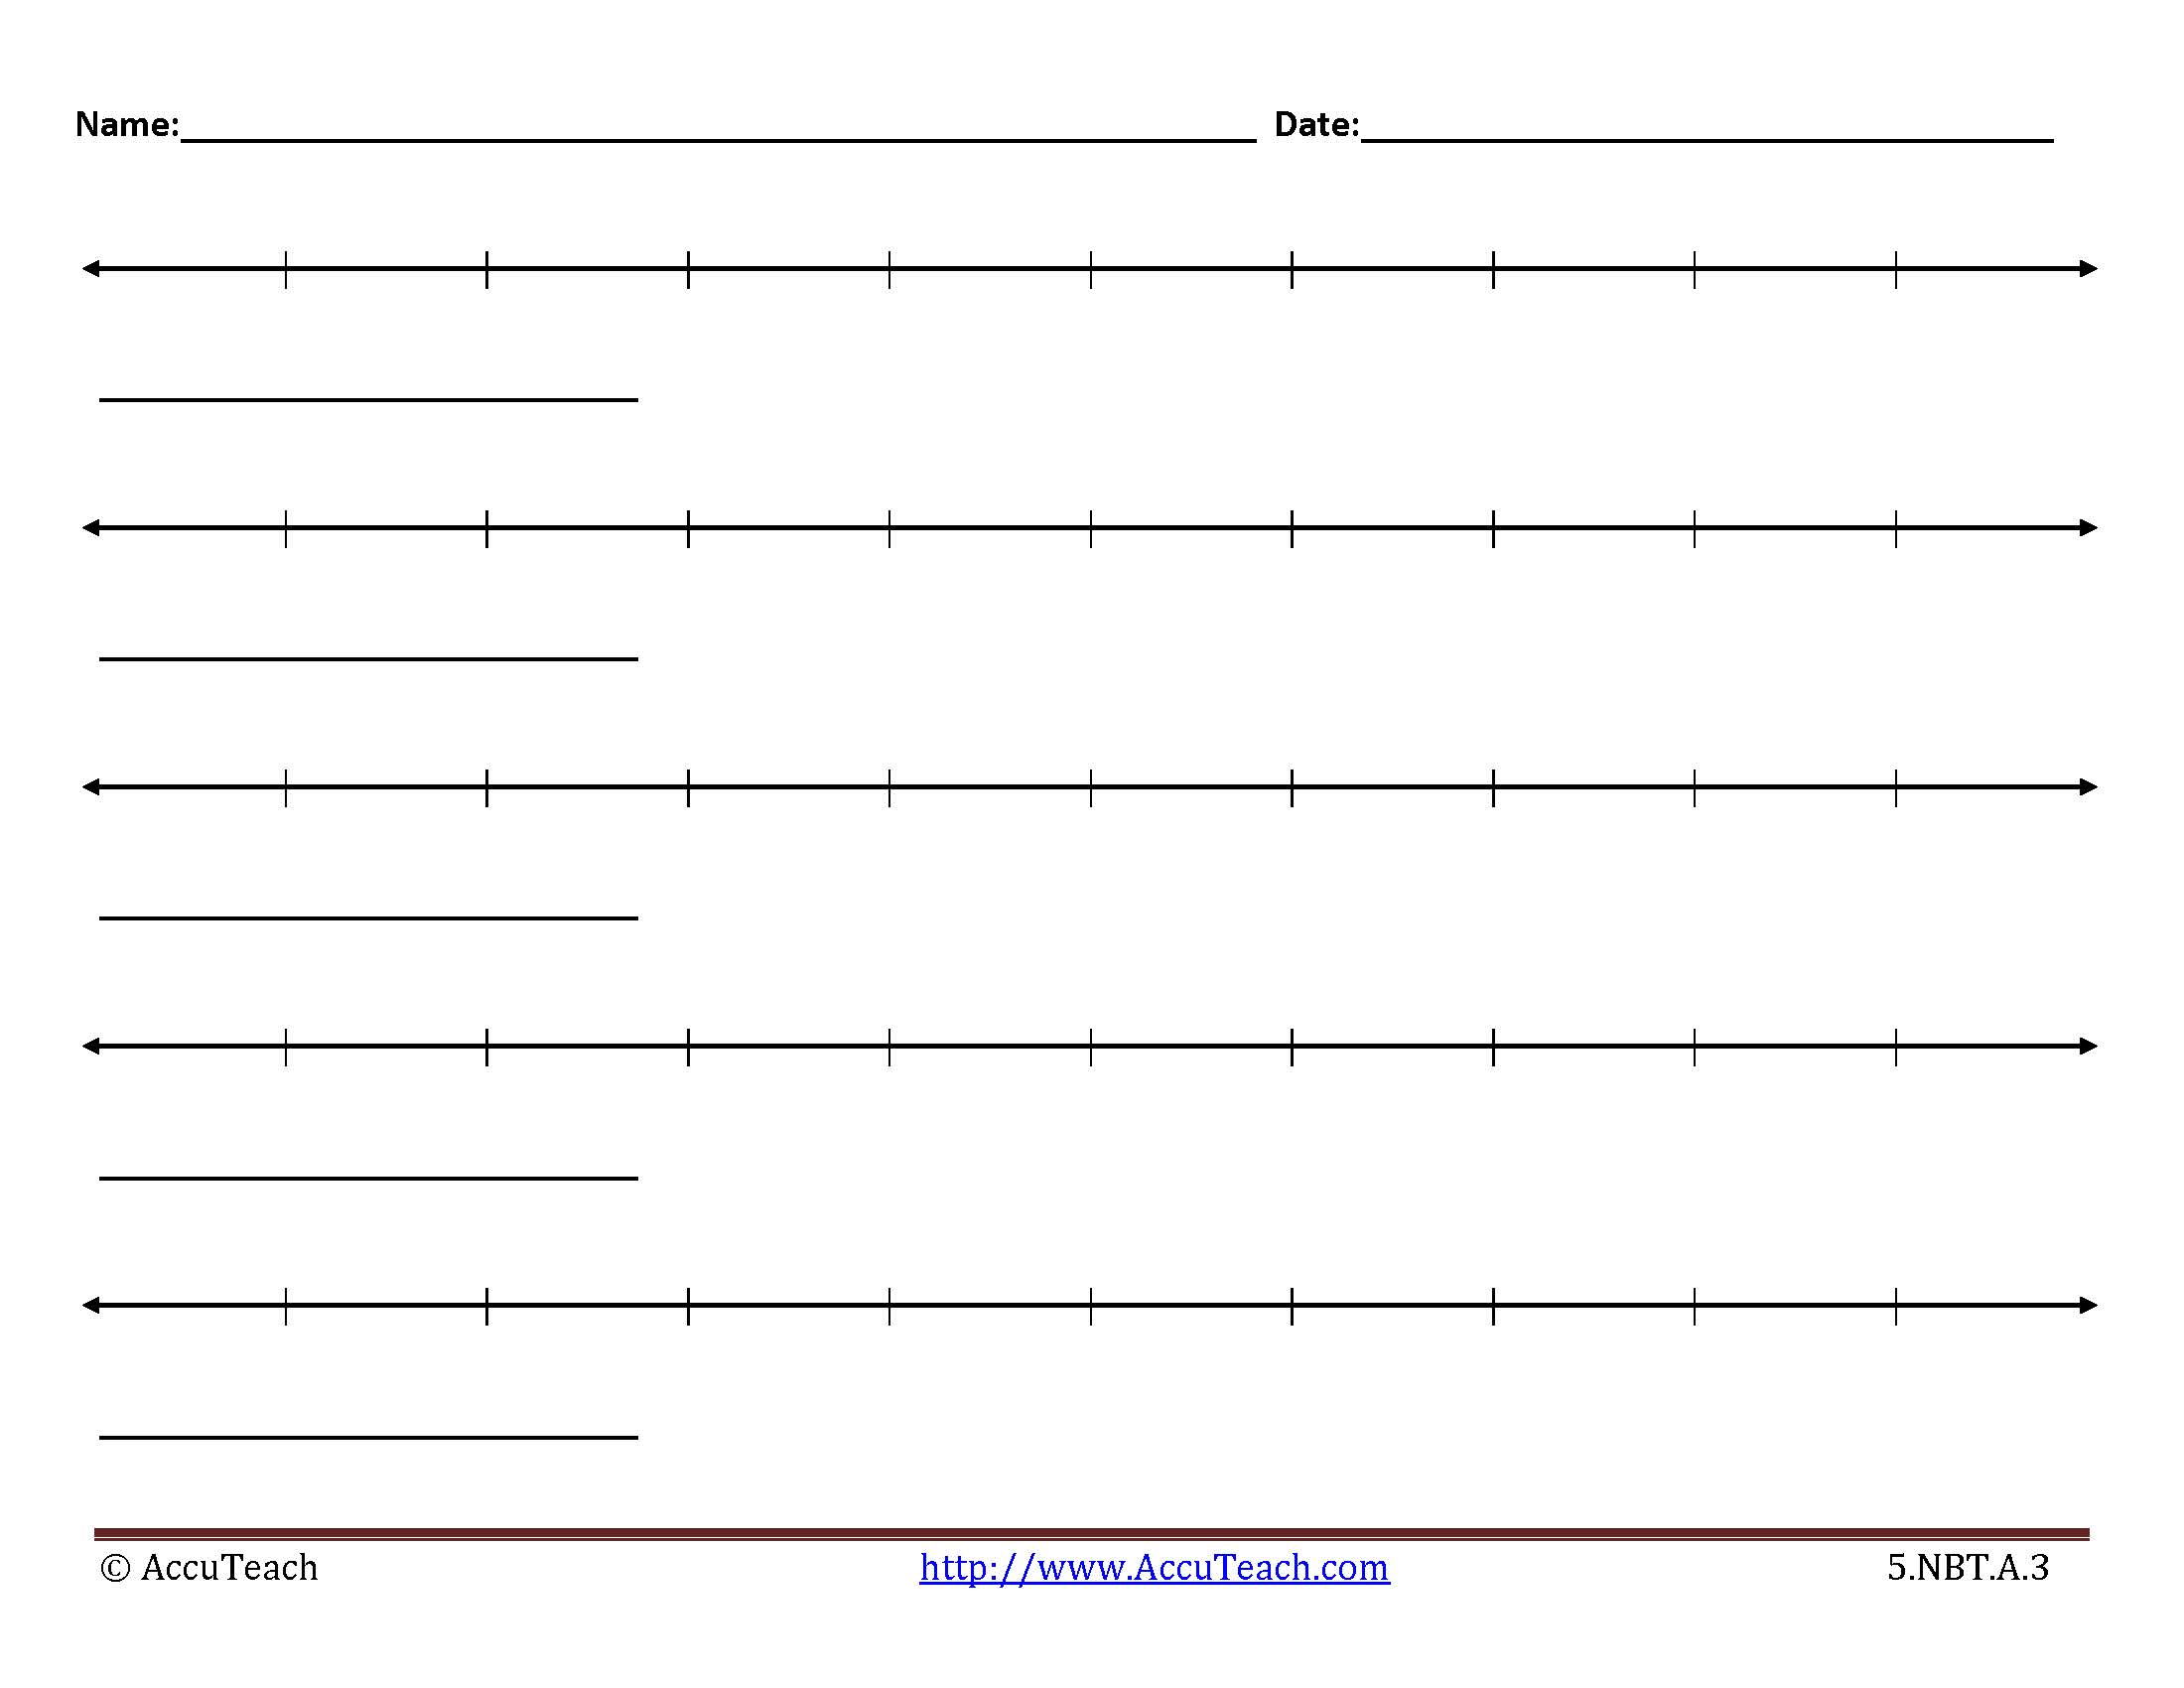 This is an image of Number Lines Printable with regard to subtraction